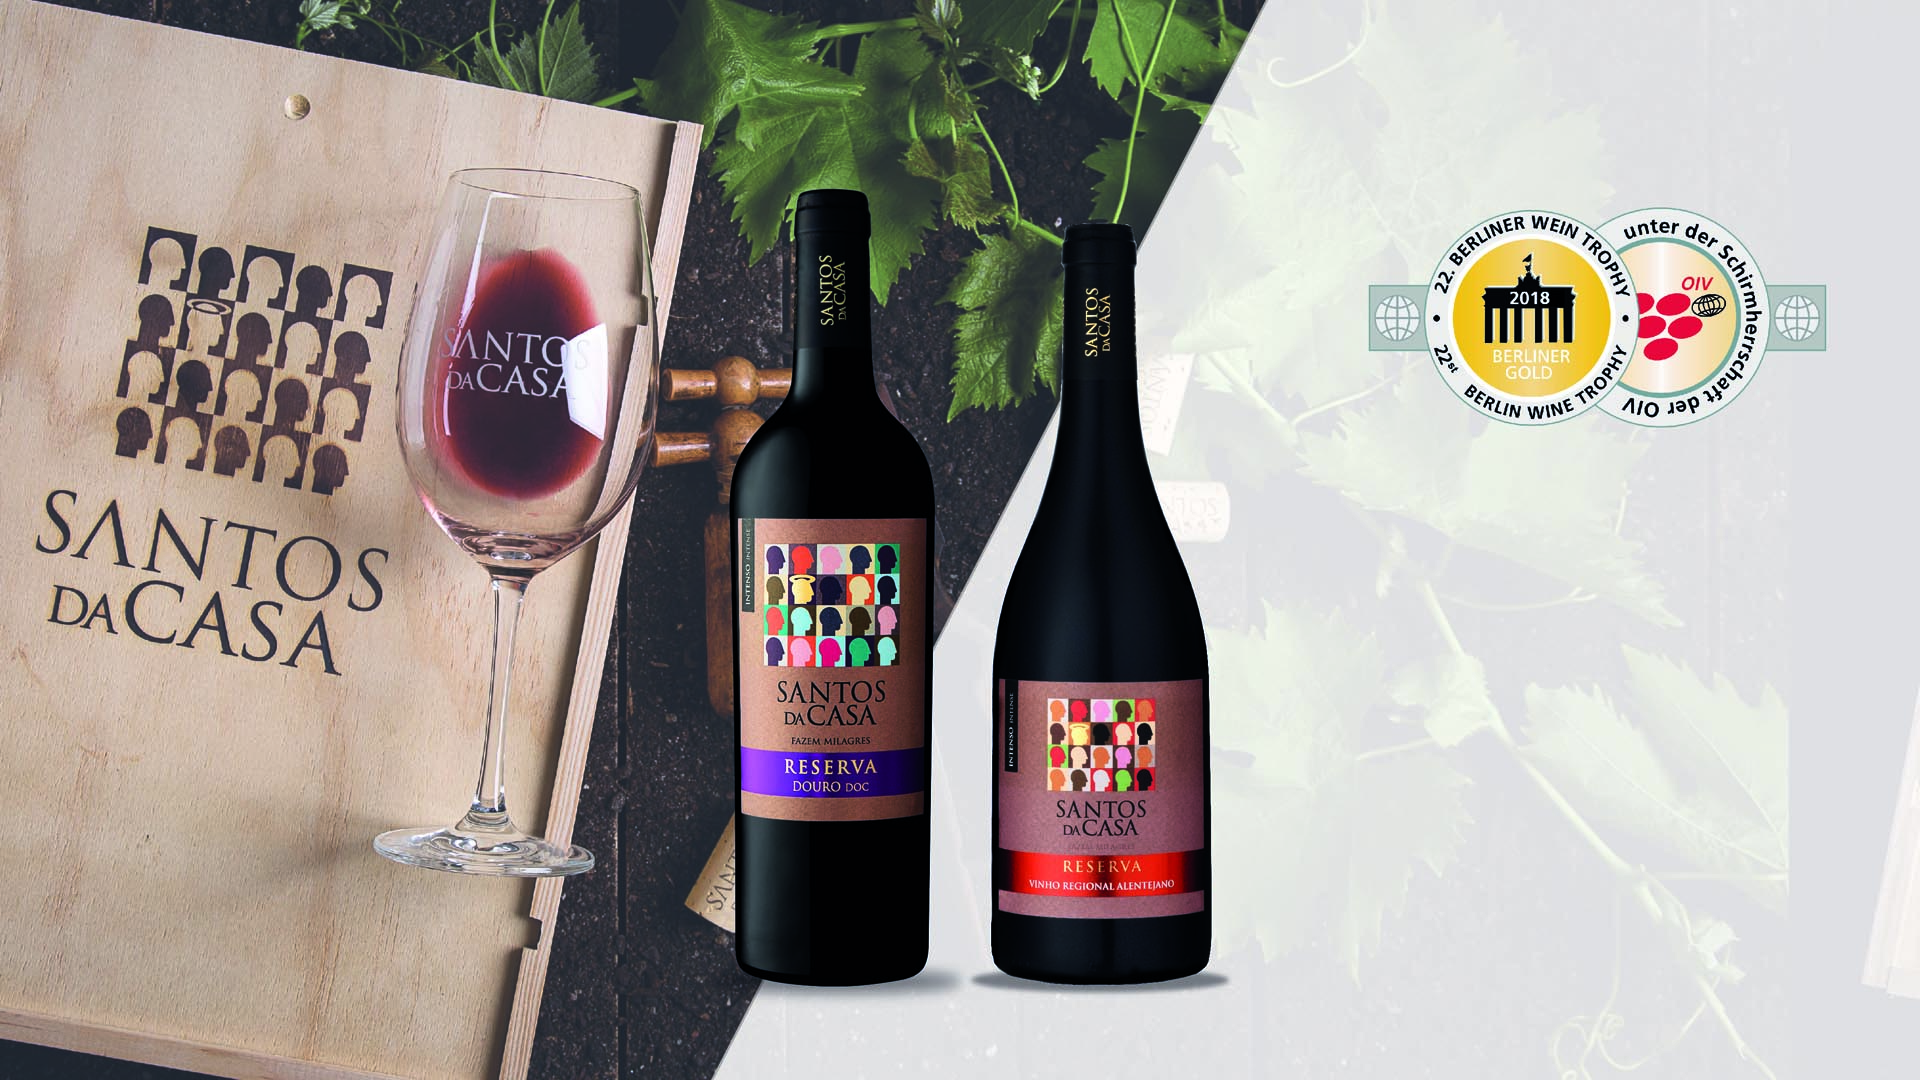 Santos da Casa receives Gold in the Berliner Wine Trophy contest